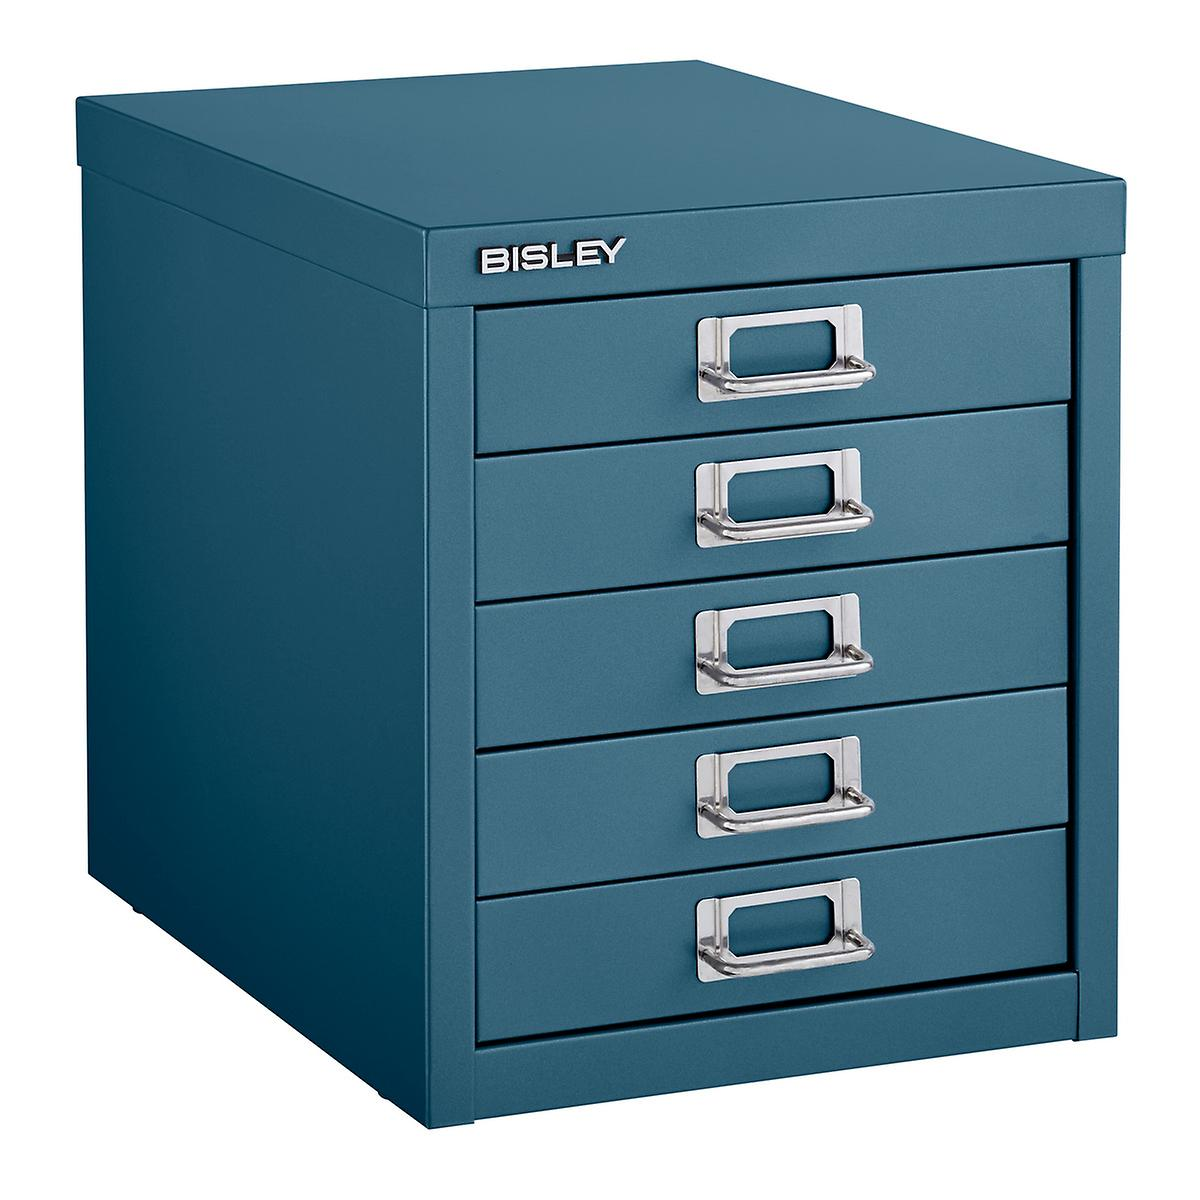 Bisley Dark Teal 5-Drawer Cabinet